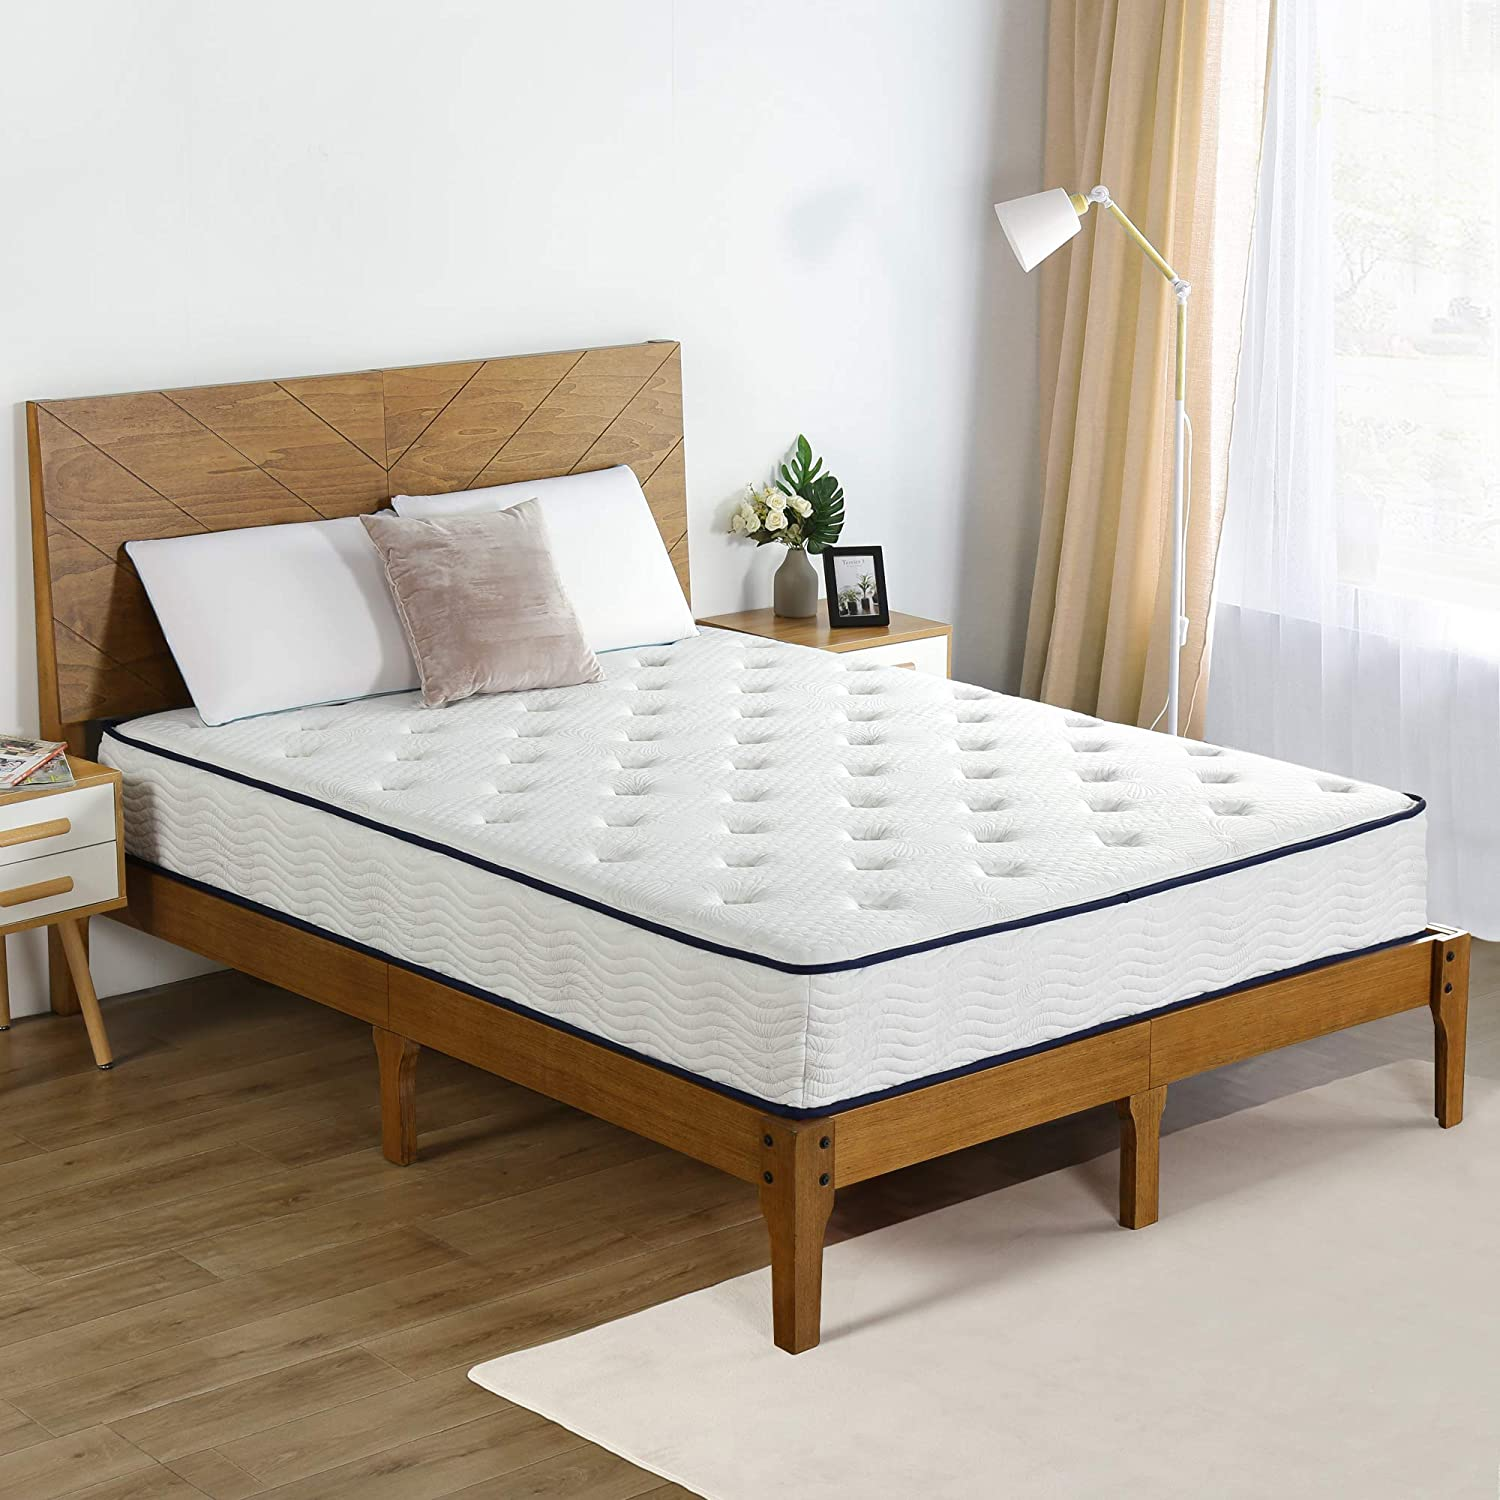 Olee Sleep 10 inch Tight Top Spring Mattress King Blue Piping,